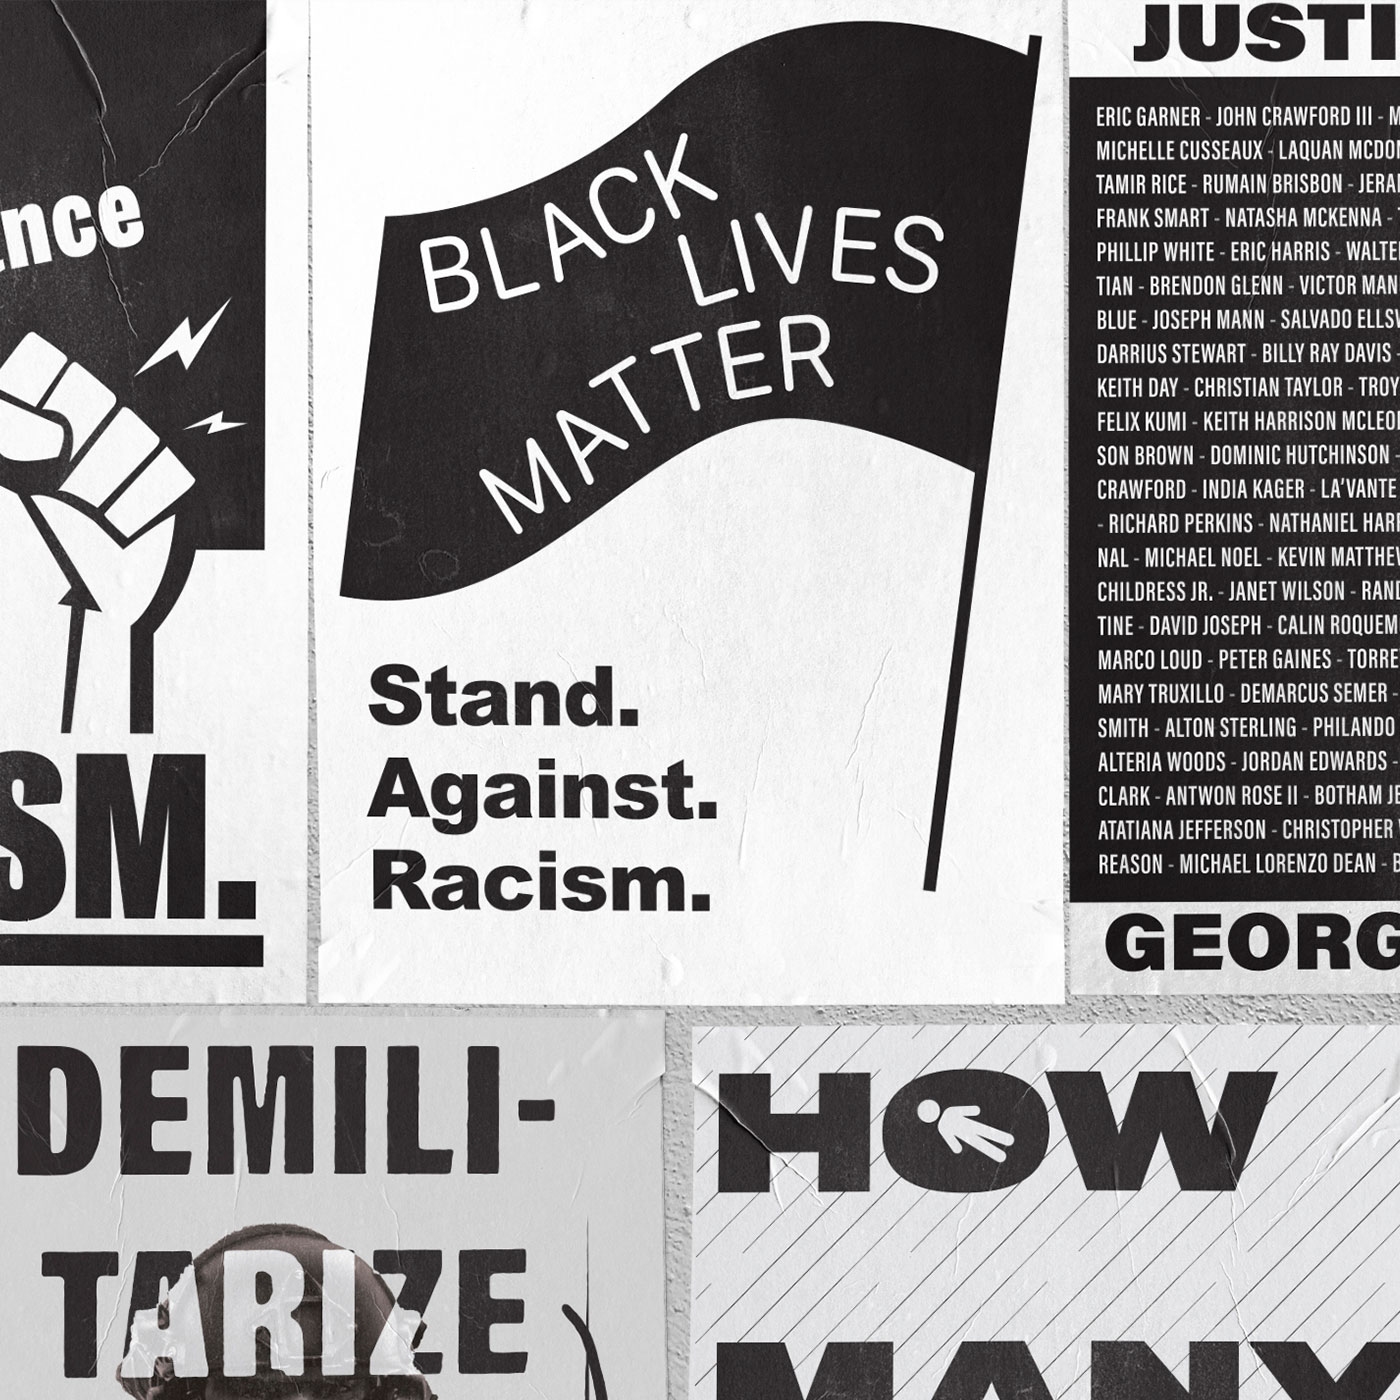 collection of black & white posters protesting police brutality and systemic racism